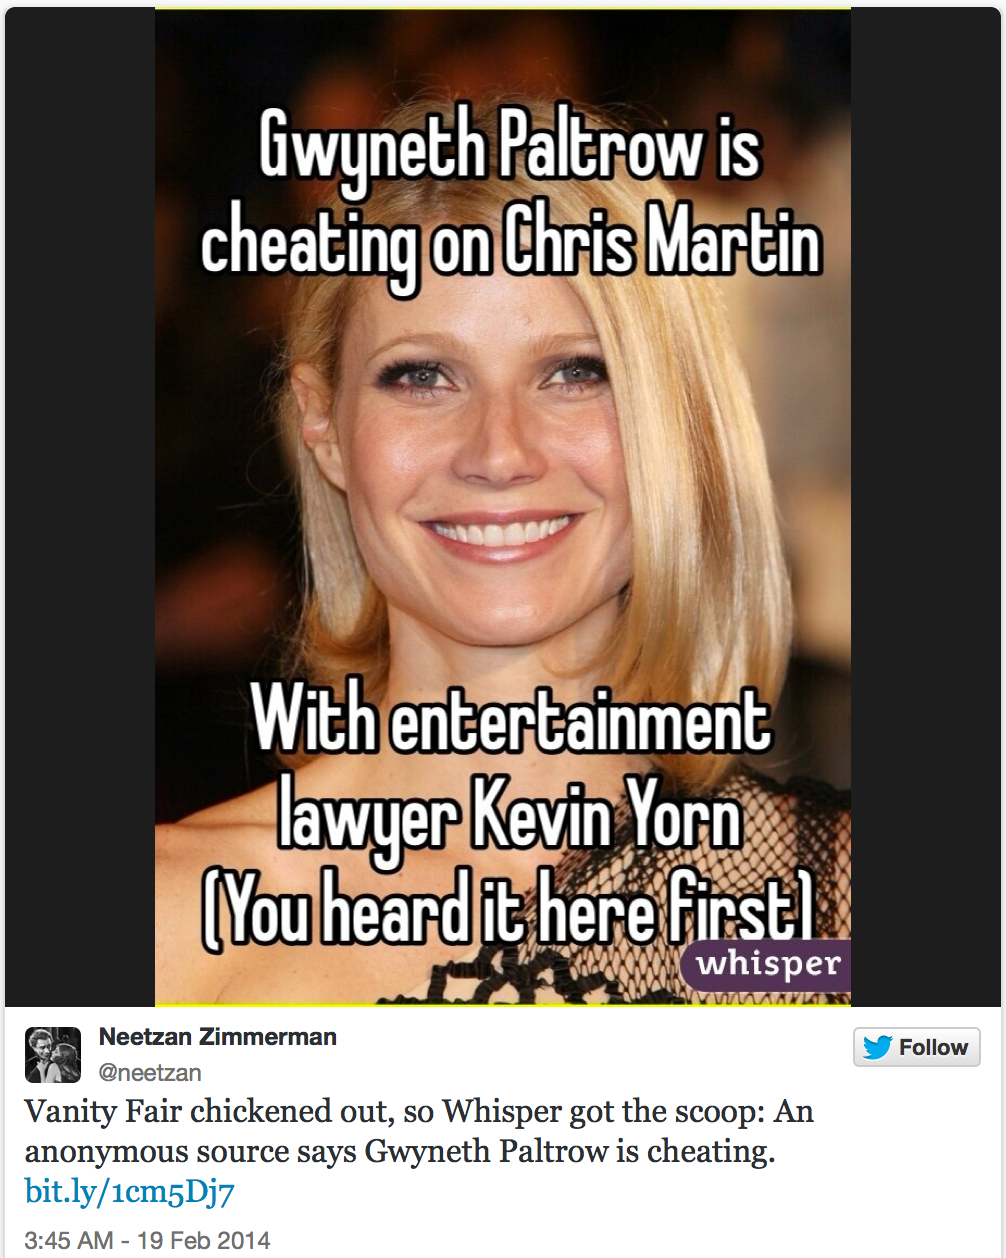 Whisper__The_Sequoia-Backed_Secret_Sharing_App__Makes_A_Move_Into_TMZ_Territory___TechCrunch